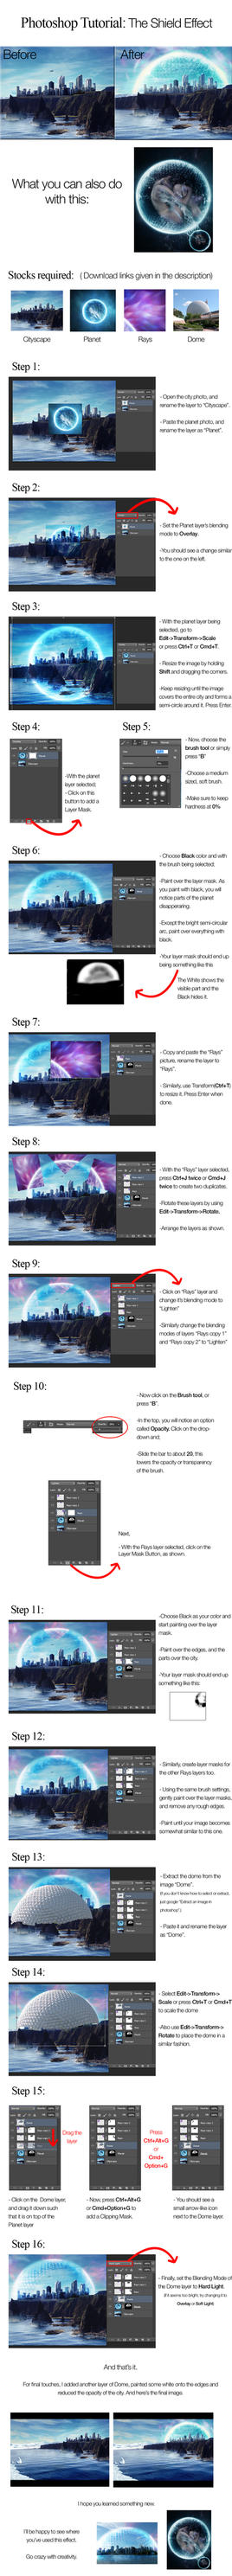 The Shield Effect-Photoshop Tutorial by RohMah1